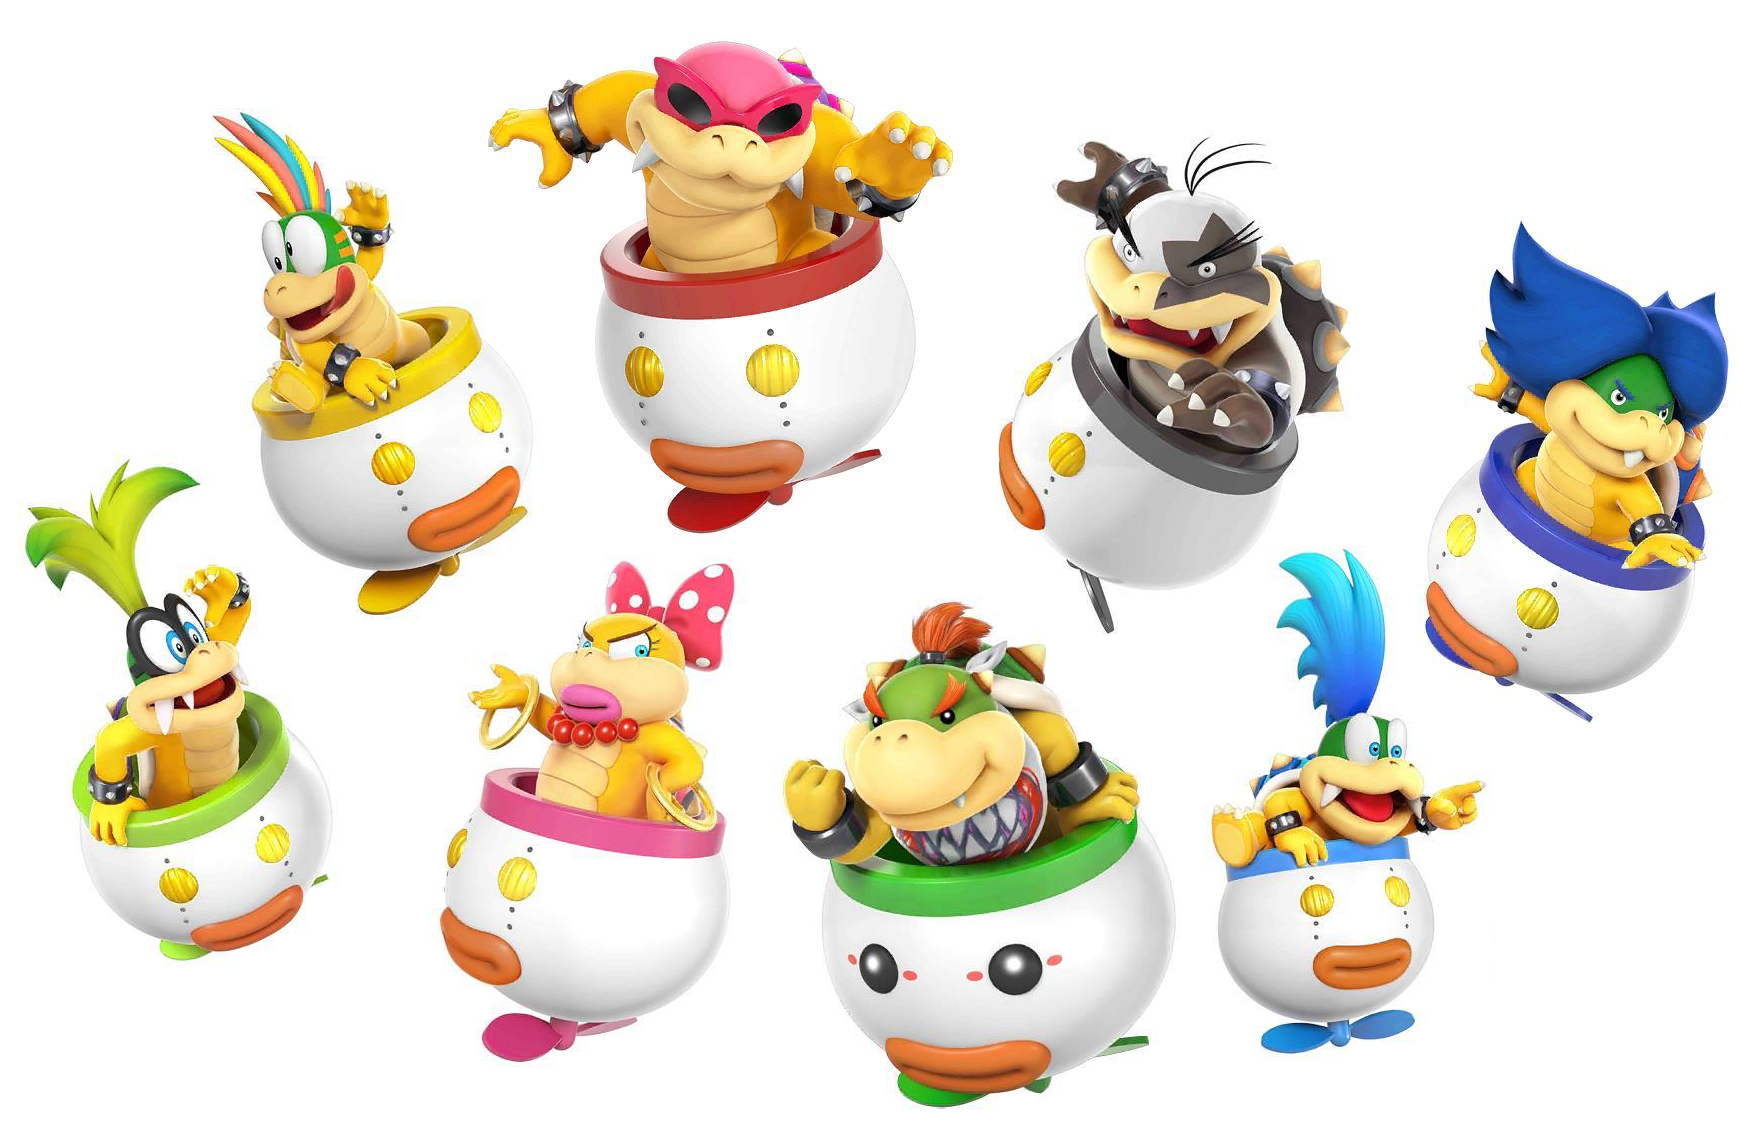 Koopalings & Bowser Jr. Artwork (Bowser Jr. Is player, 7 Koopalings on kano world map, nintendo world map, ventus world map, kirby world map, super mario galaxy world map, mushroom world map, dracula world map, shadow the hedgehog world map, super mario kart world map, raphael world map, sly cooper world map,